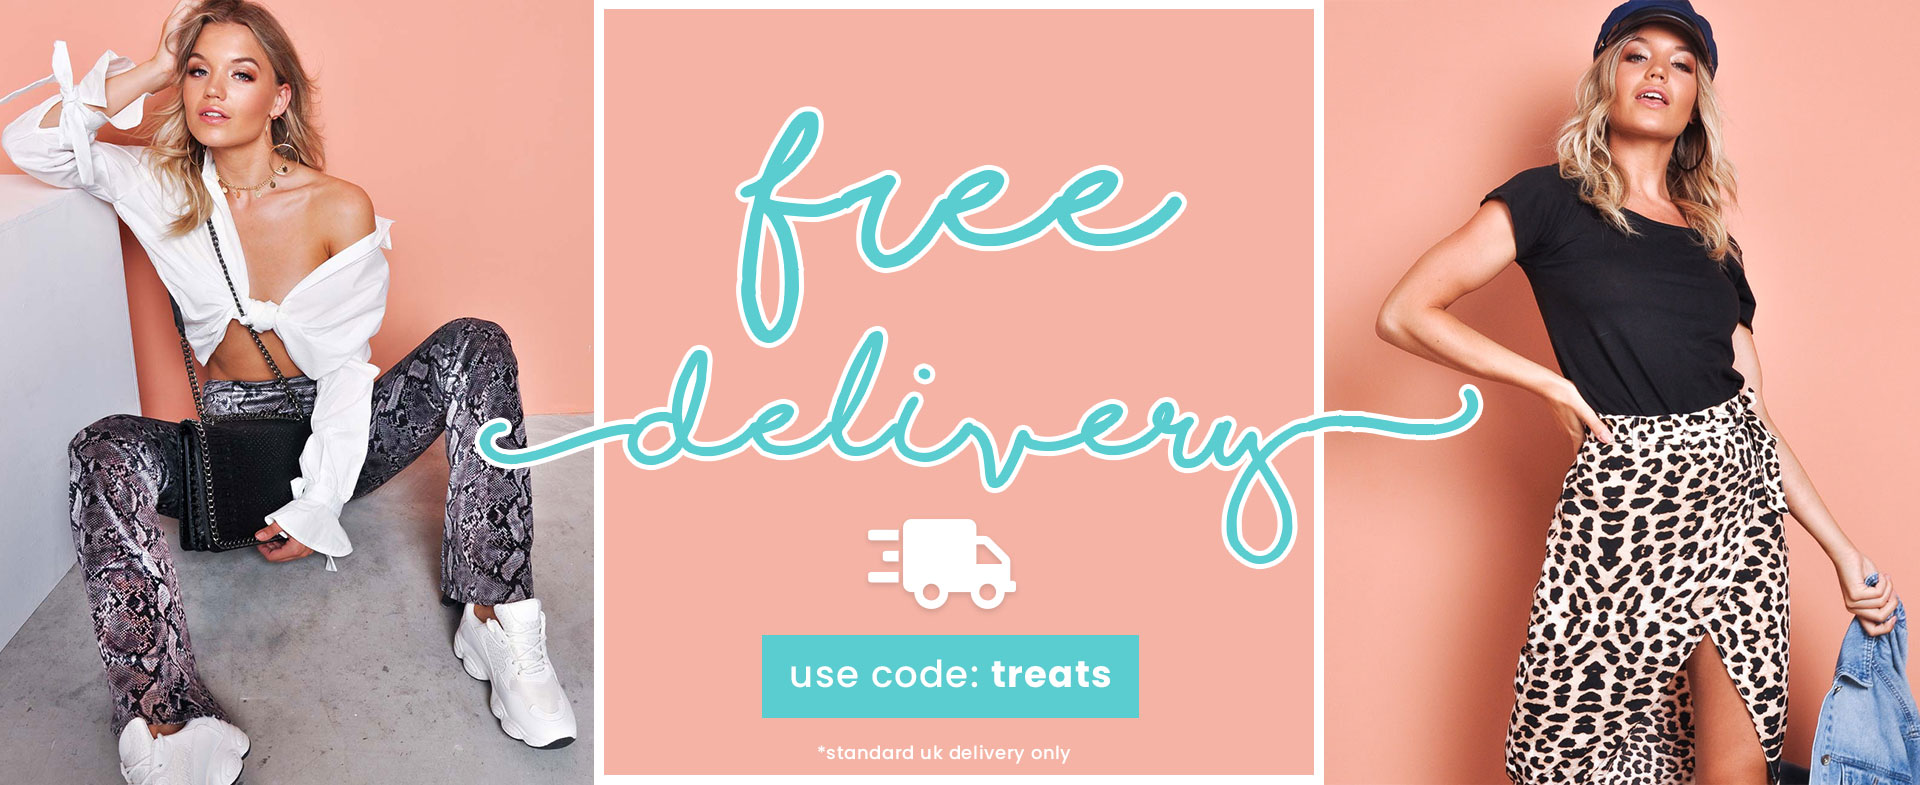 free-delivery-dt.jpg